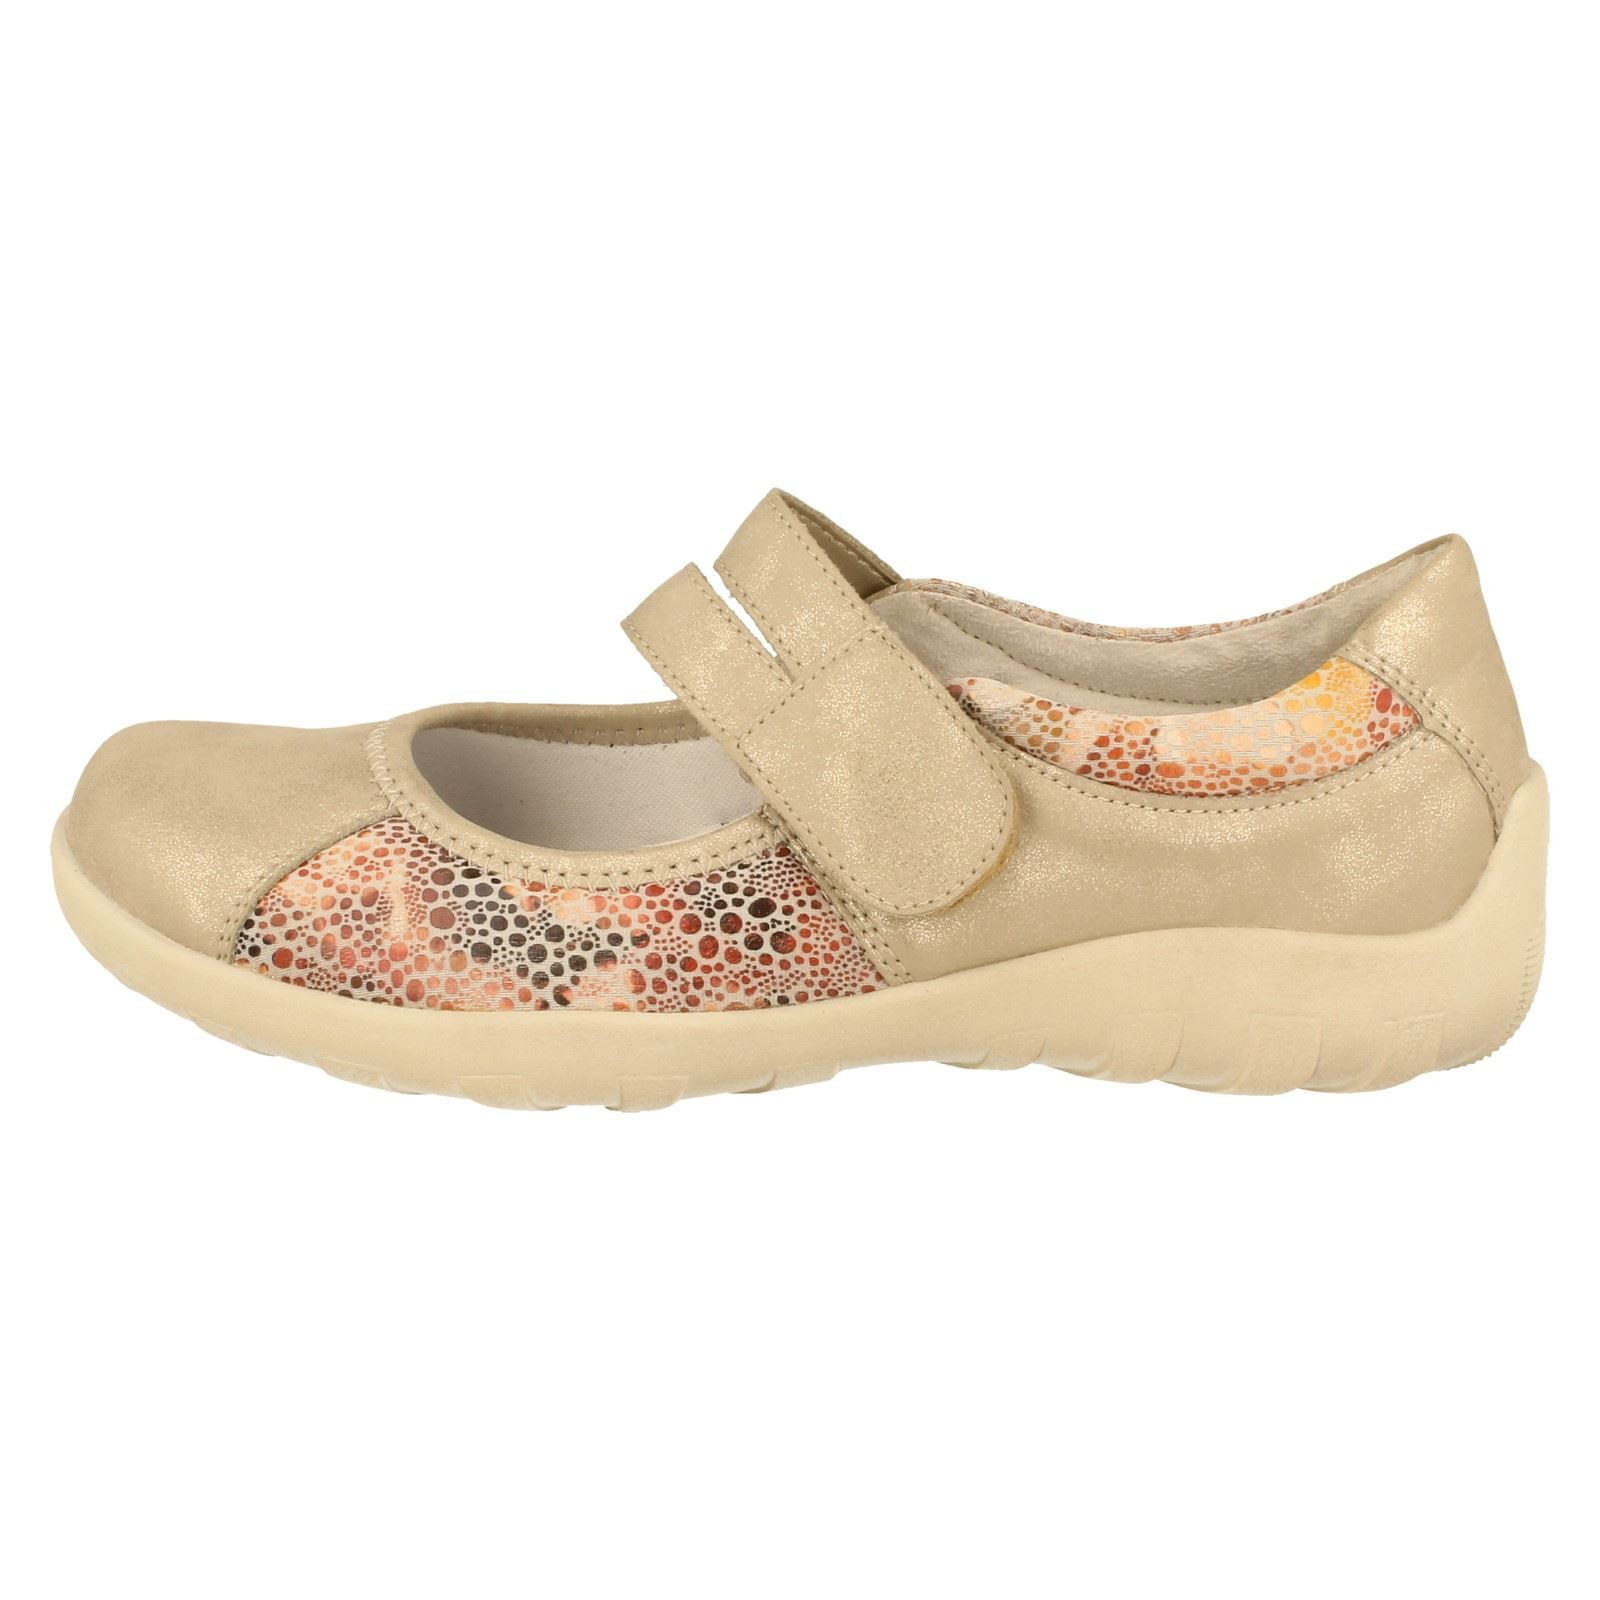 Ladies Remonte Casual Shoes The Style R3510 -W